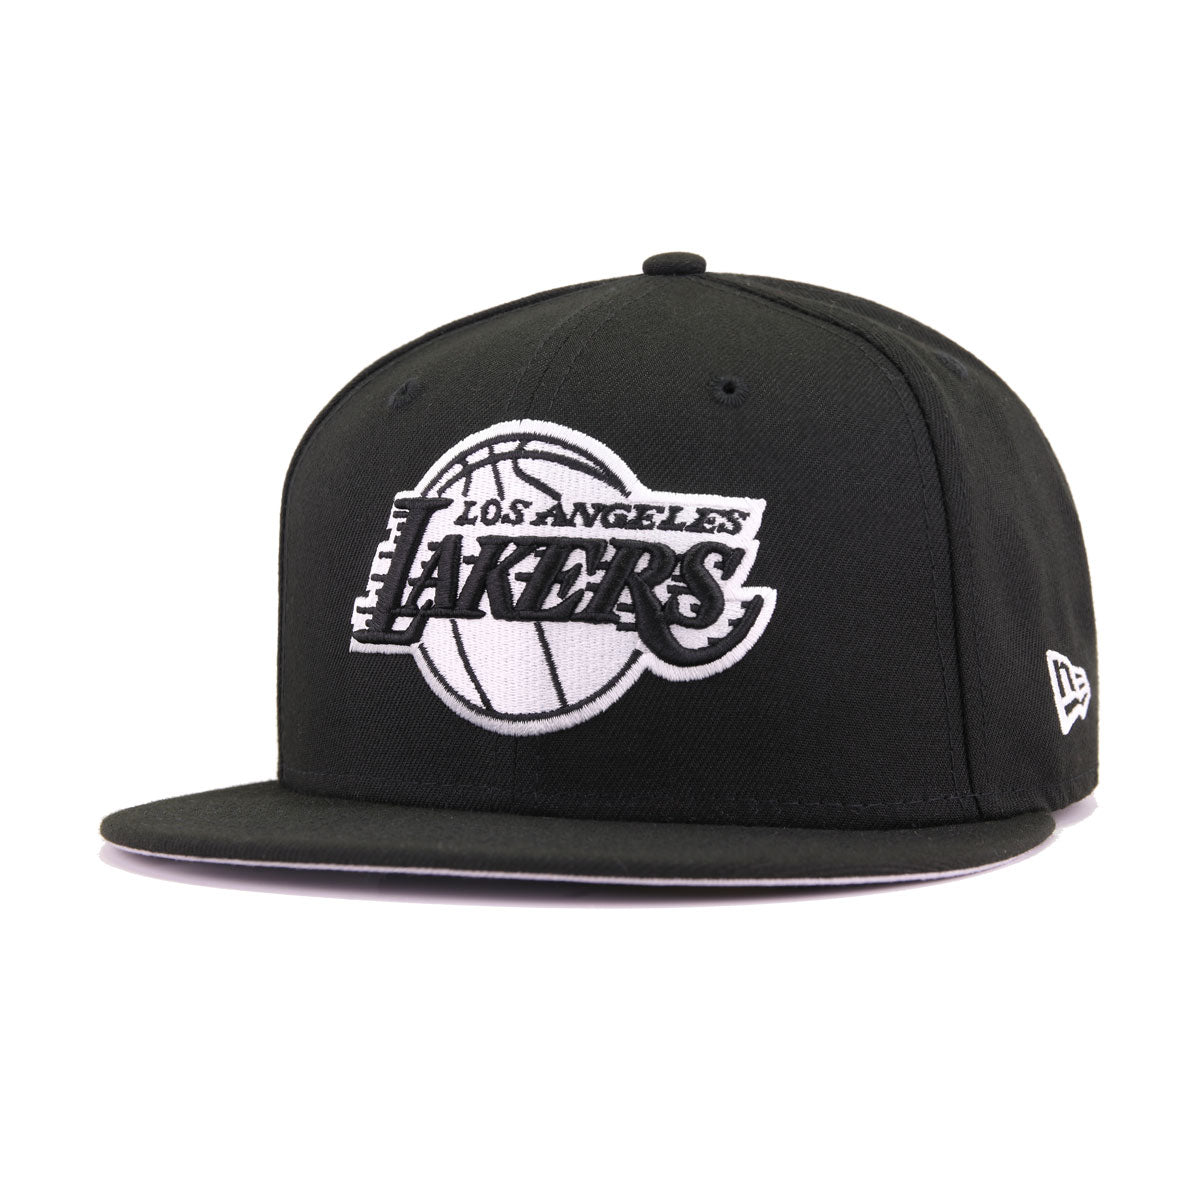 a74ed4d8b03 ... best price los angeles lakers black white new era 59fifty fitted c649b  7acb2